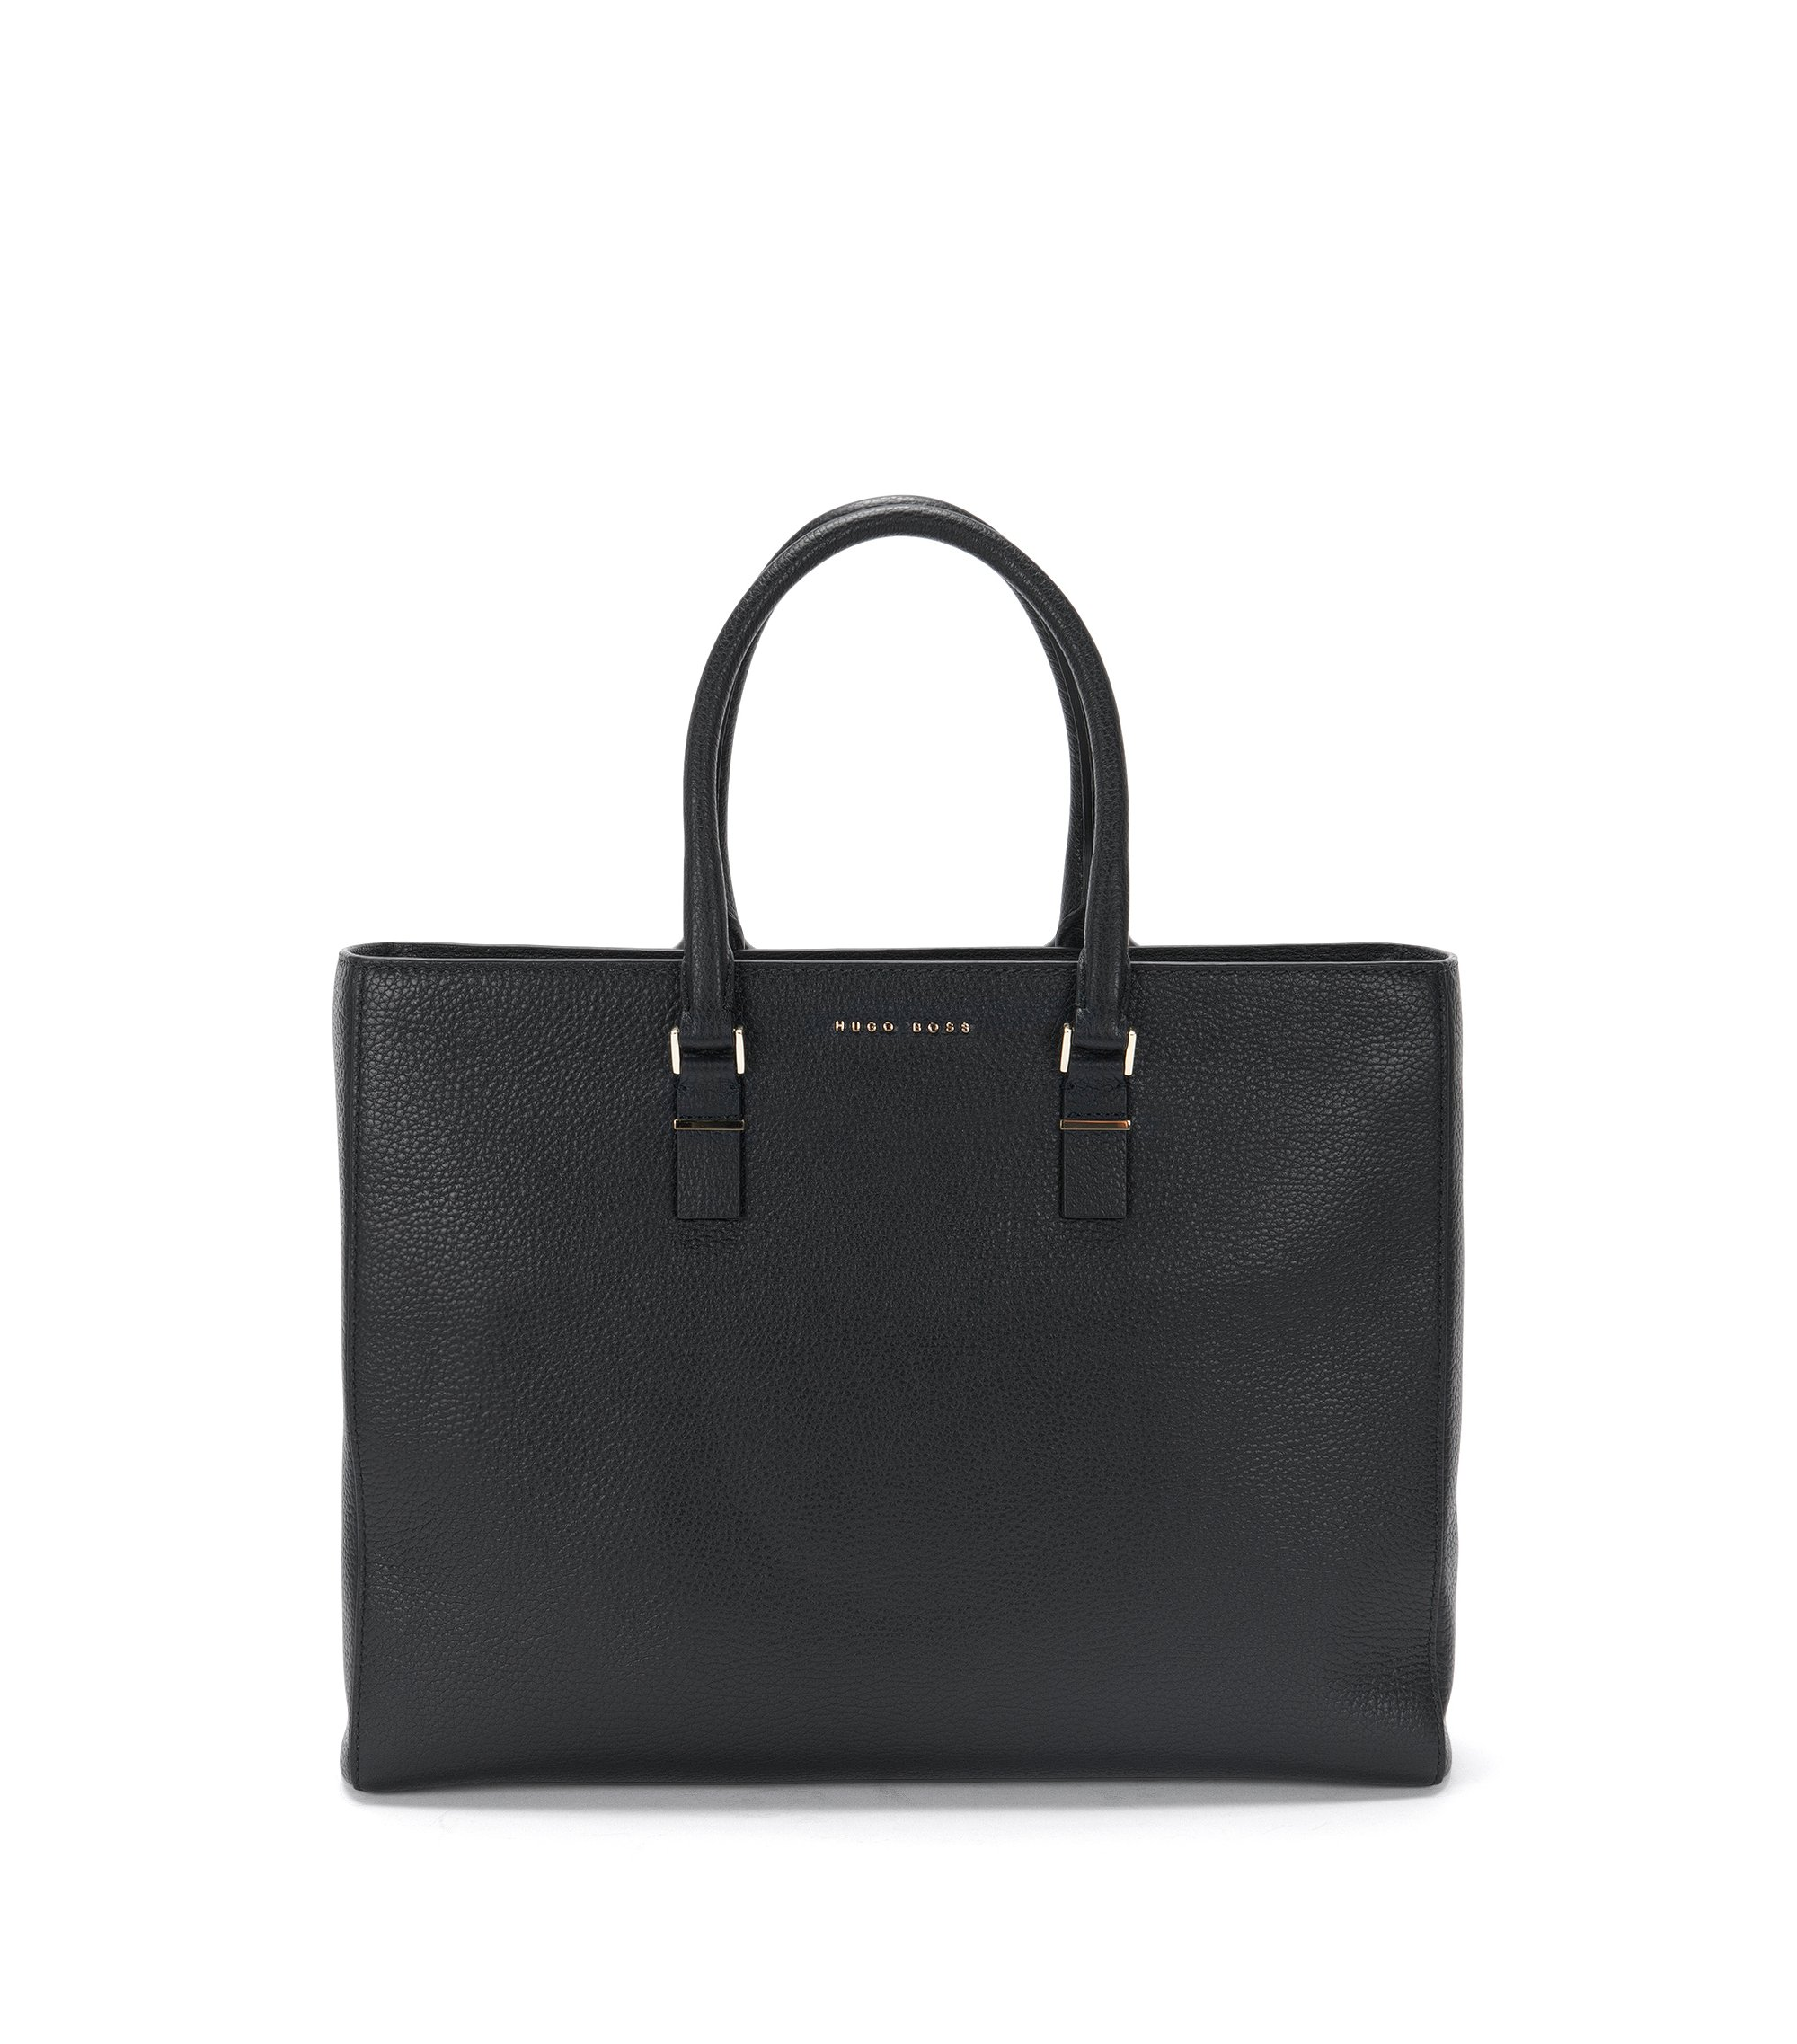 Borsa da lavoro BOSS Luxury Staple in pregiata pelle italiana, Nero